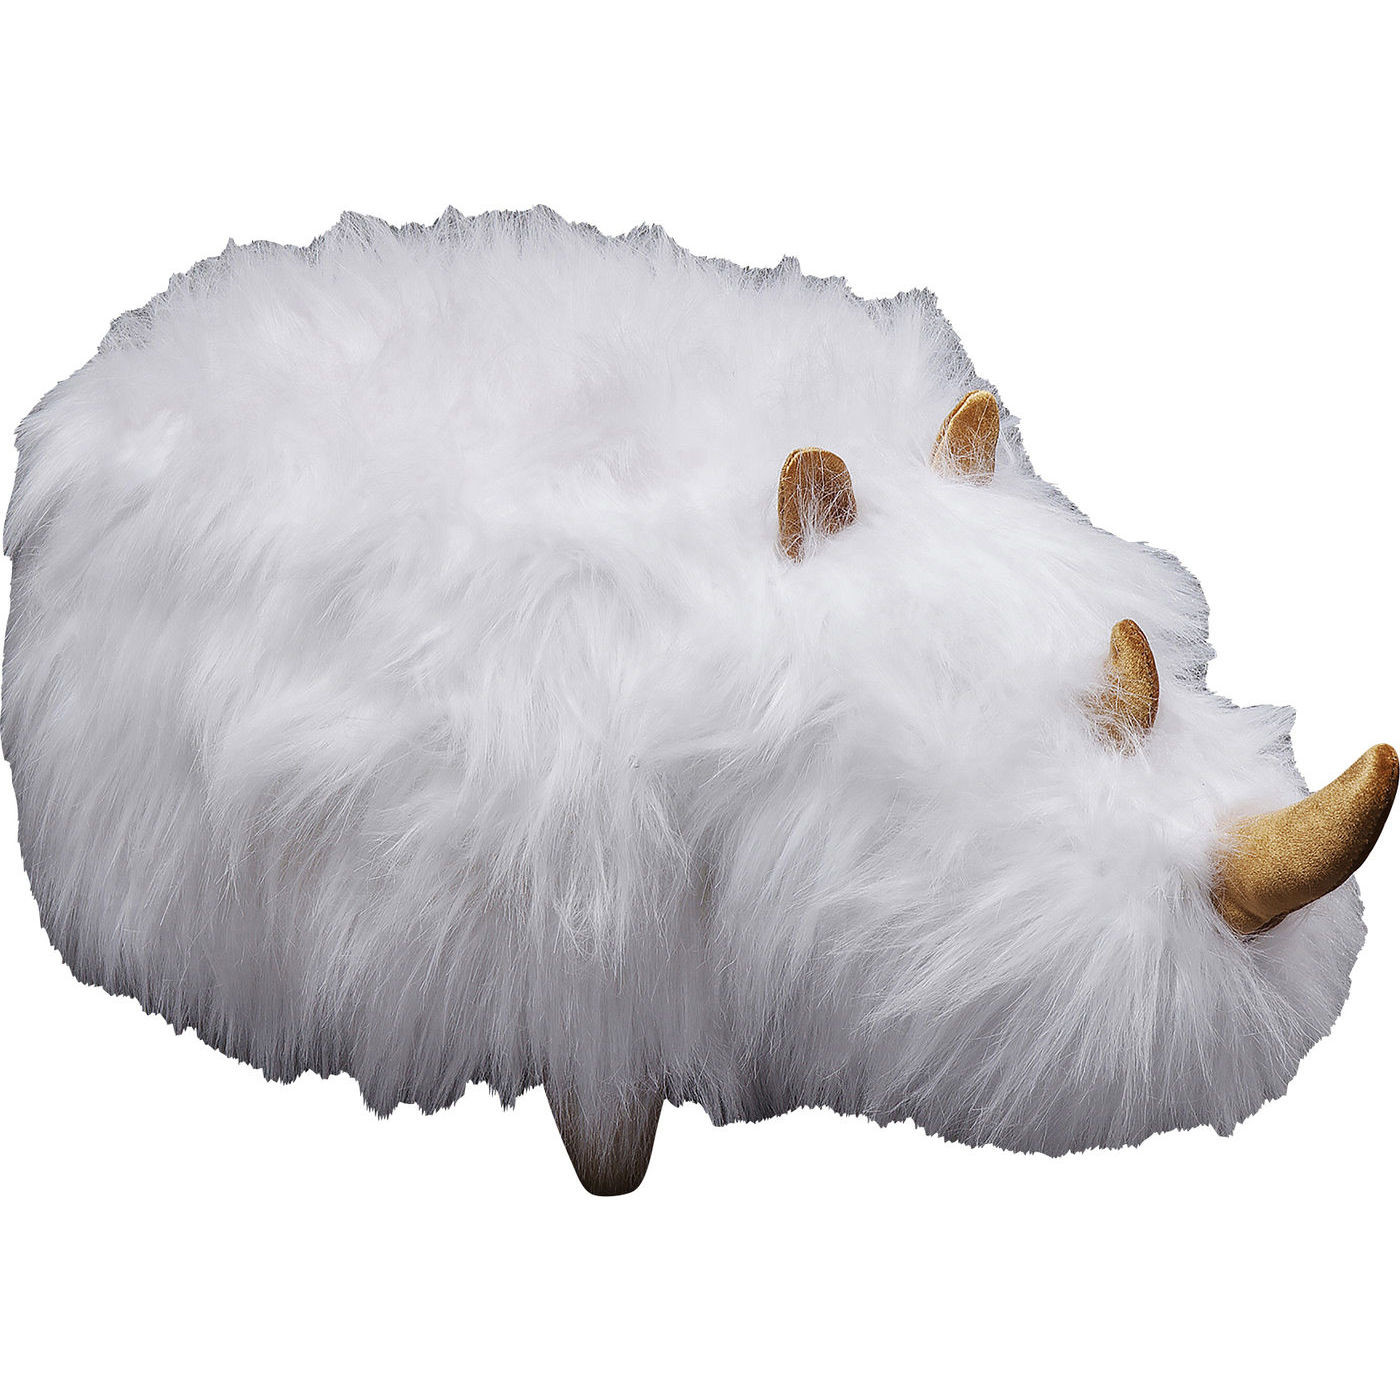 Kare Design Hocker Fell Hocker Rhino Fur White